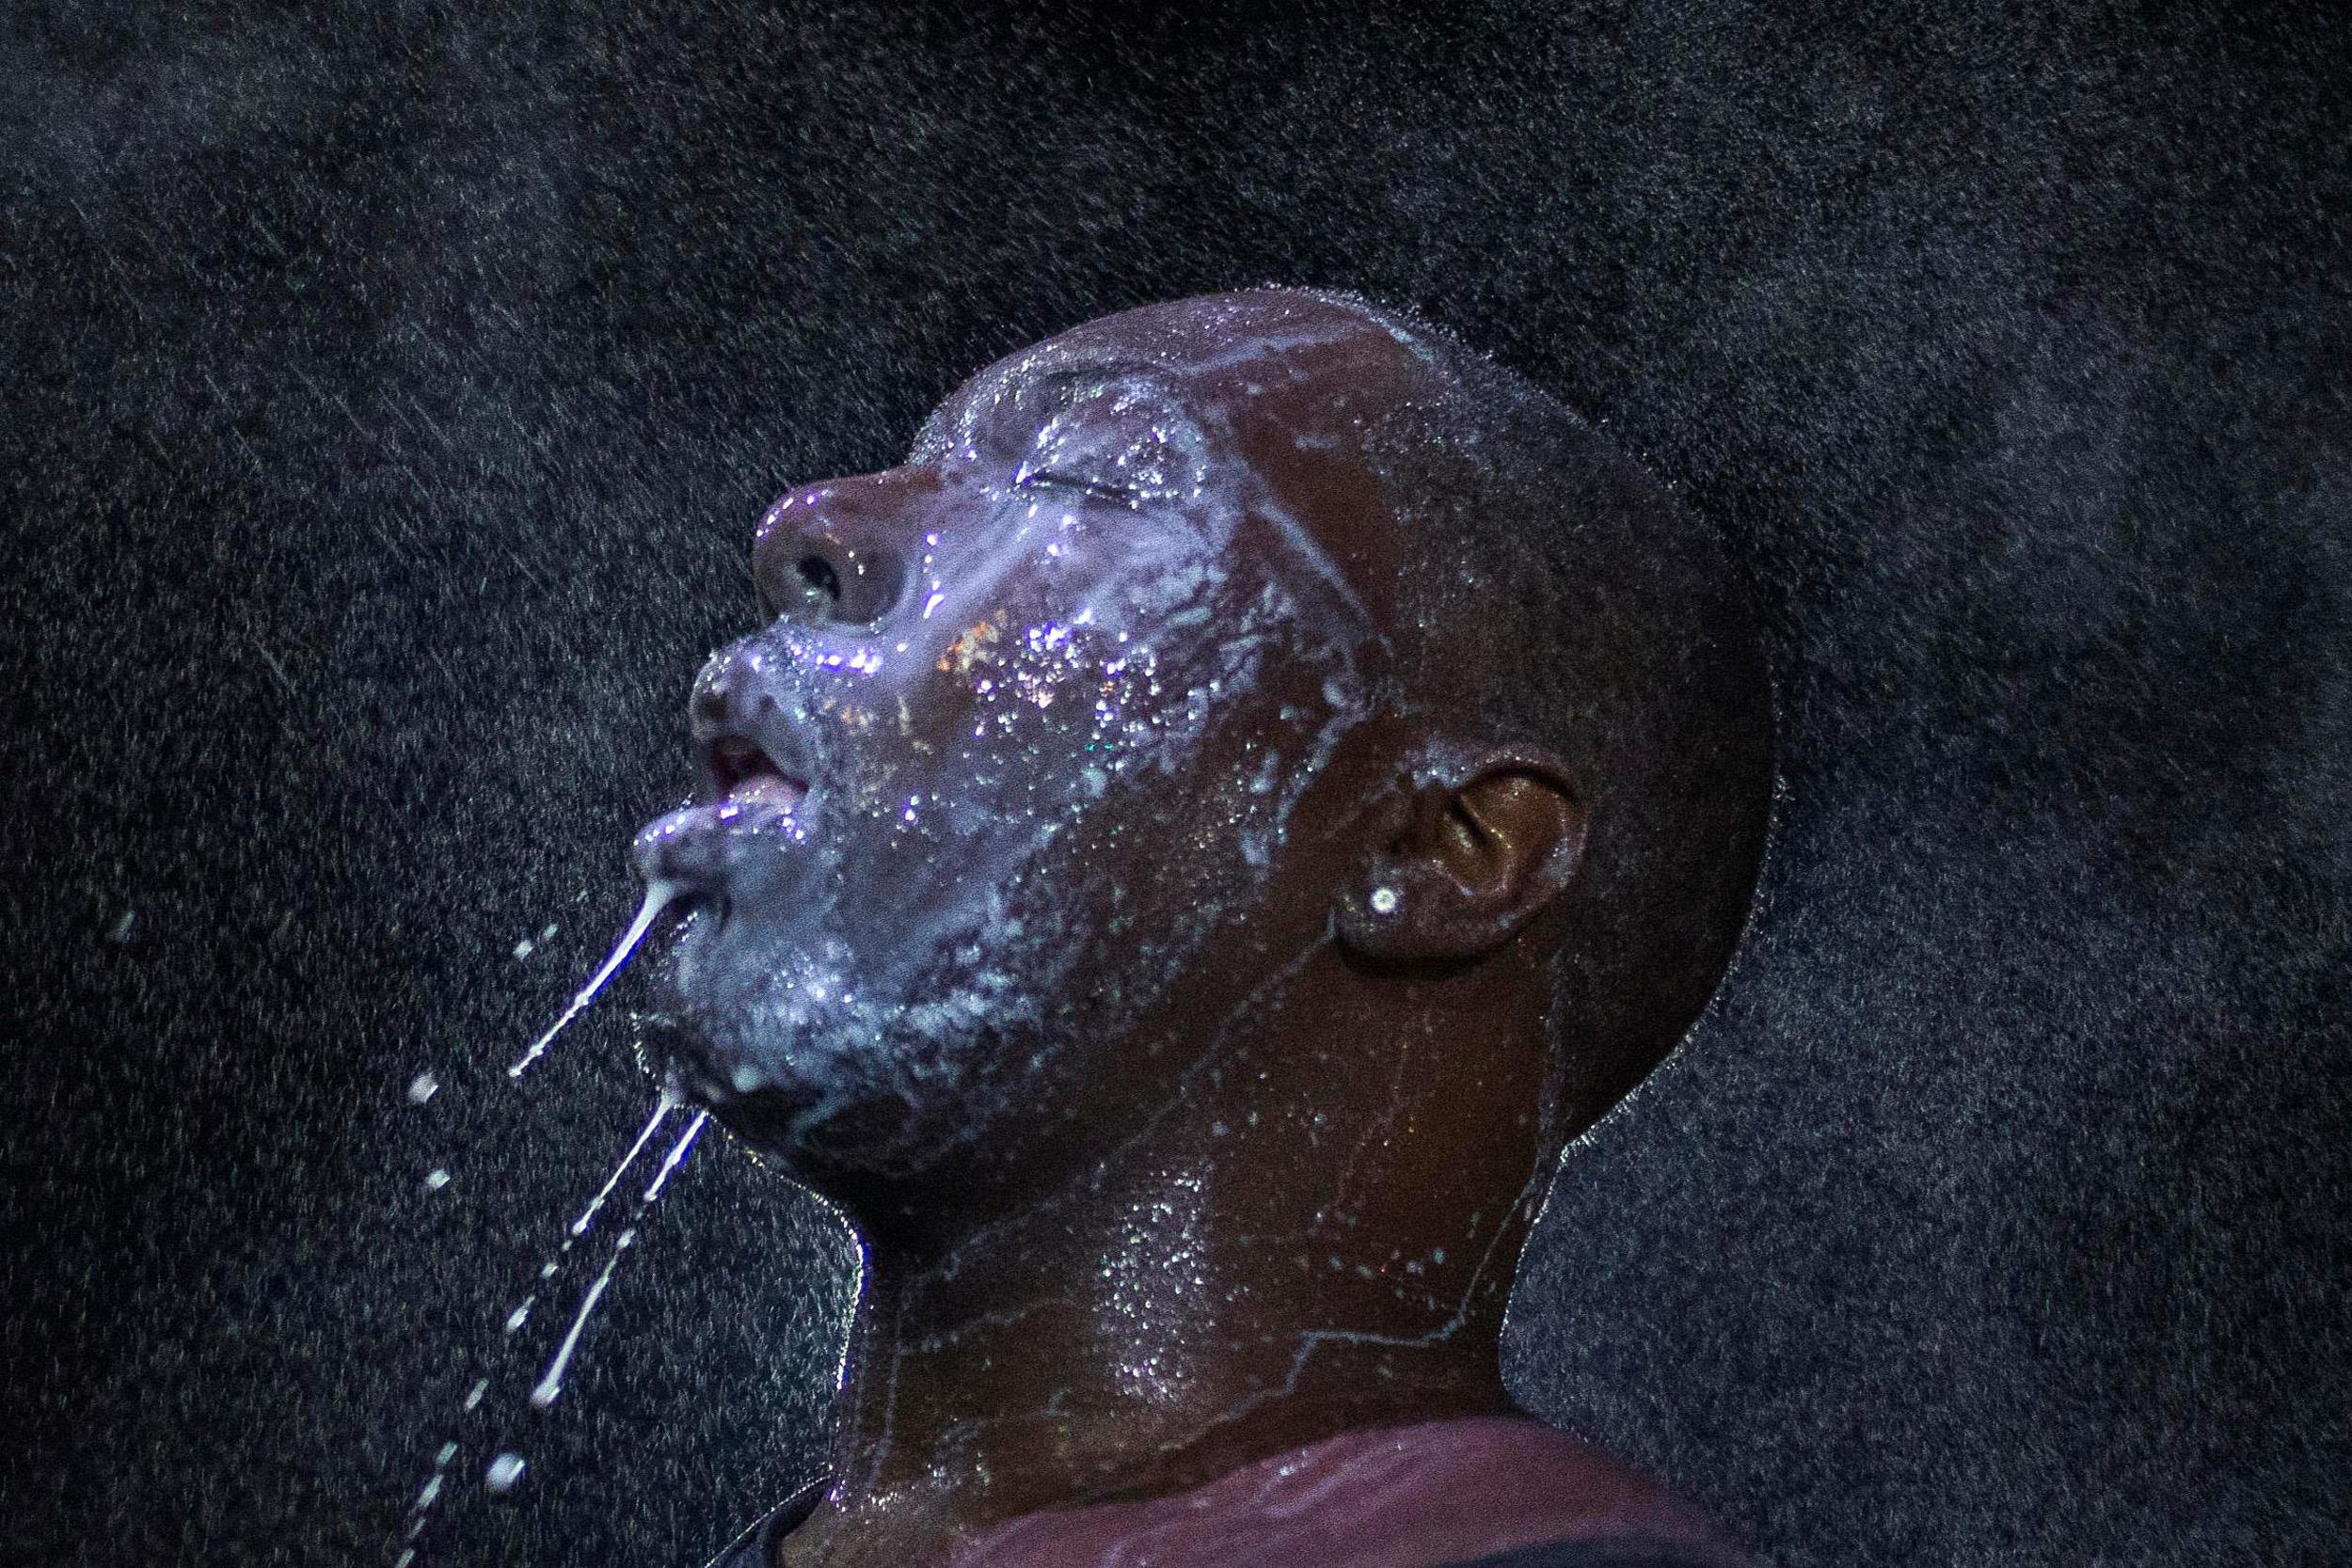 Image: A man is doused with milk and sprayed with mist after being hit by an eye irritant from security forces trying to disperse demonstrators protesting against the shooting of Brown in Ferguson